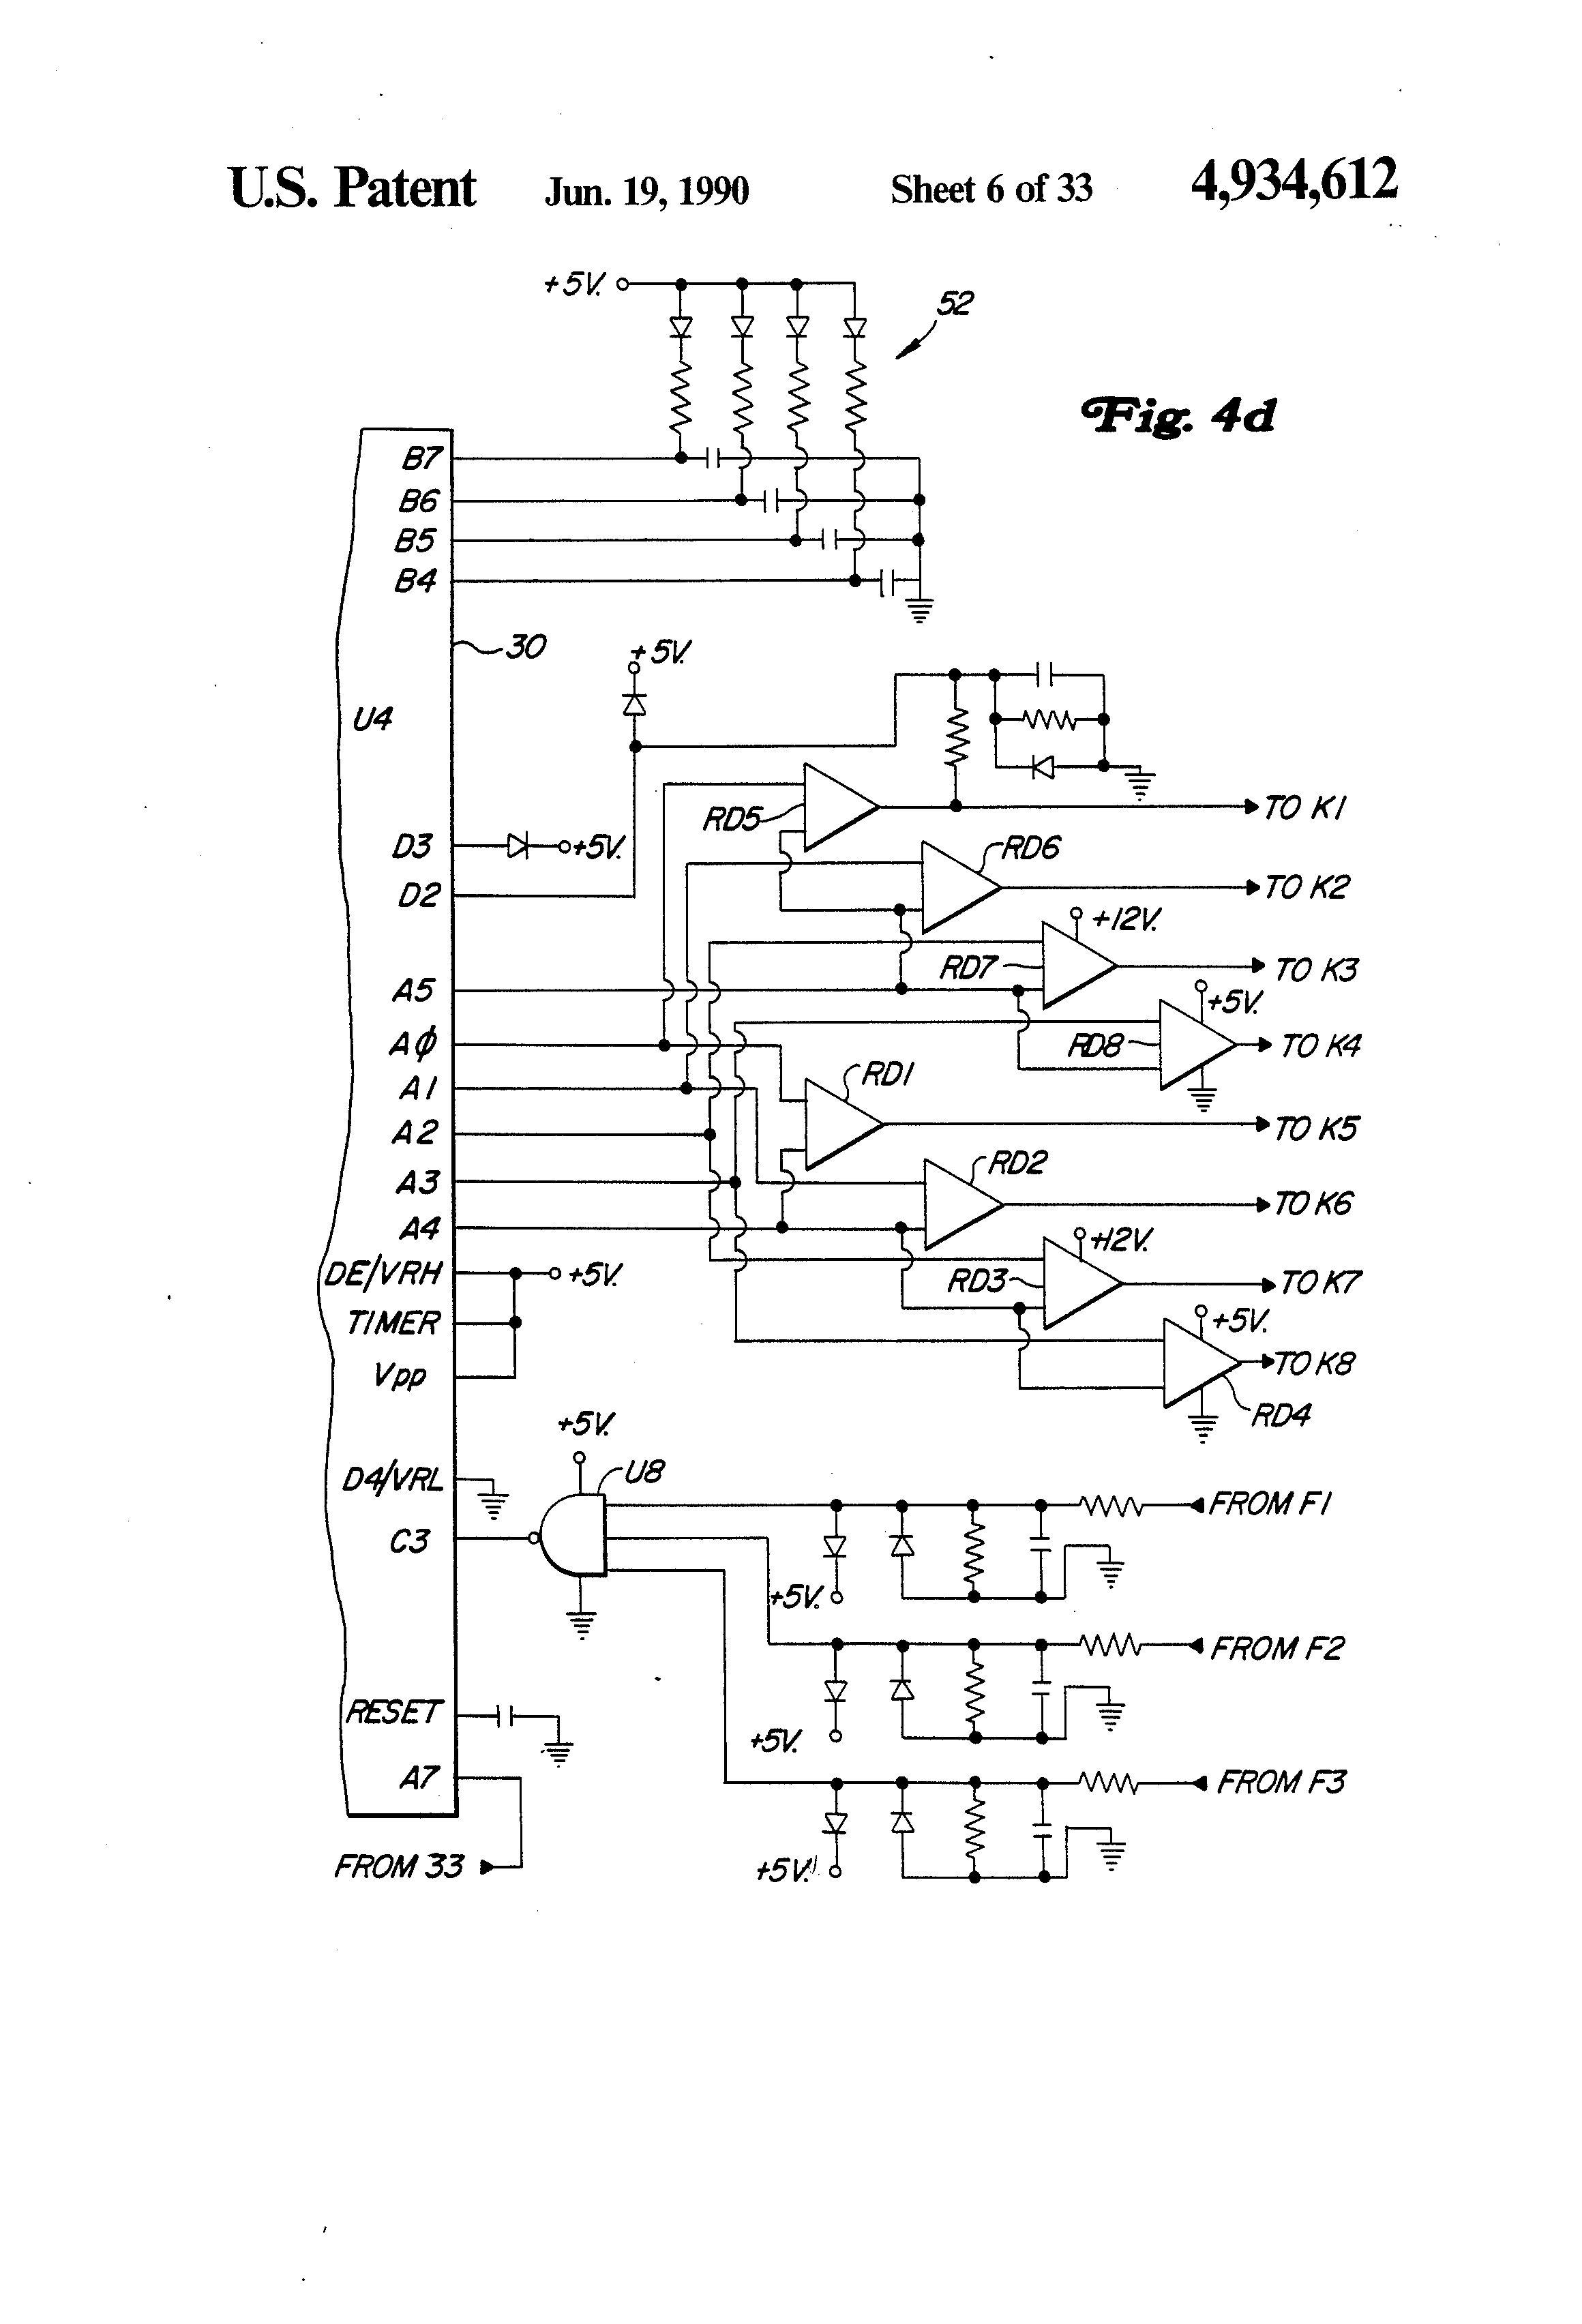 vermeer wiring diagram online circuit wiring diagram u2022 rh electrobuddha co uk vermeer chipper wiring diagram vermeer bc1800xl wiring diagram